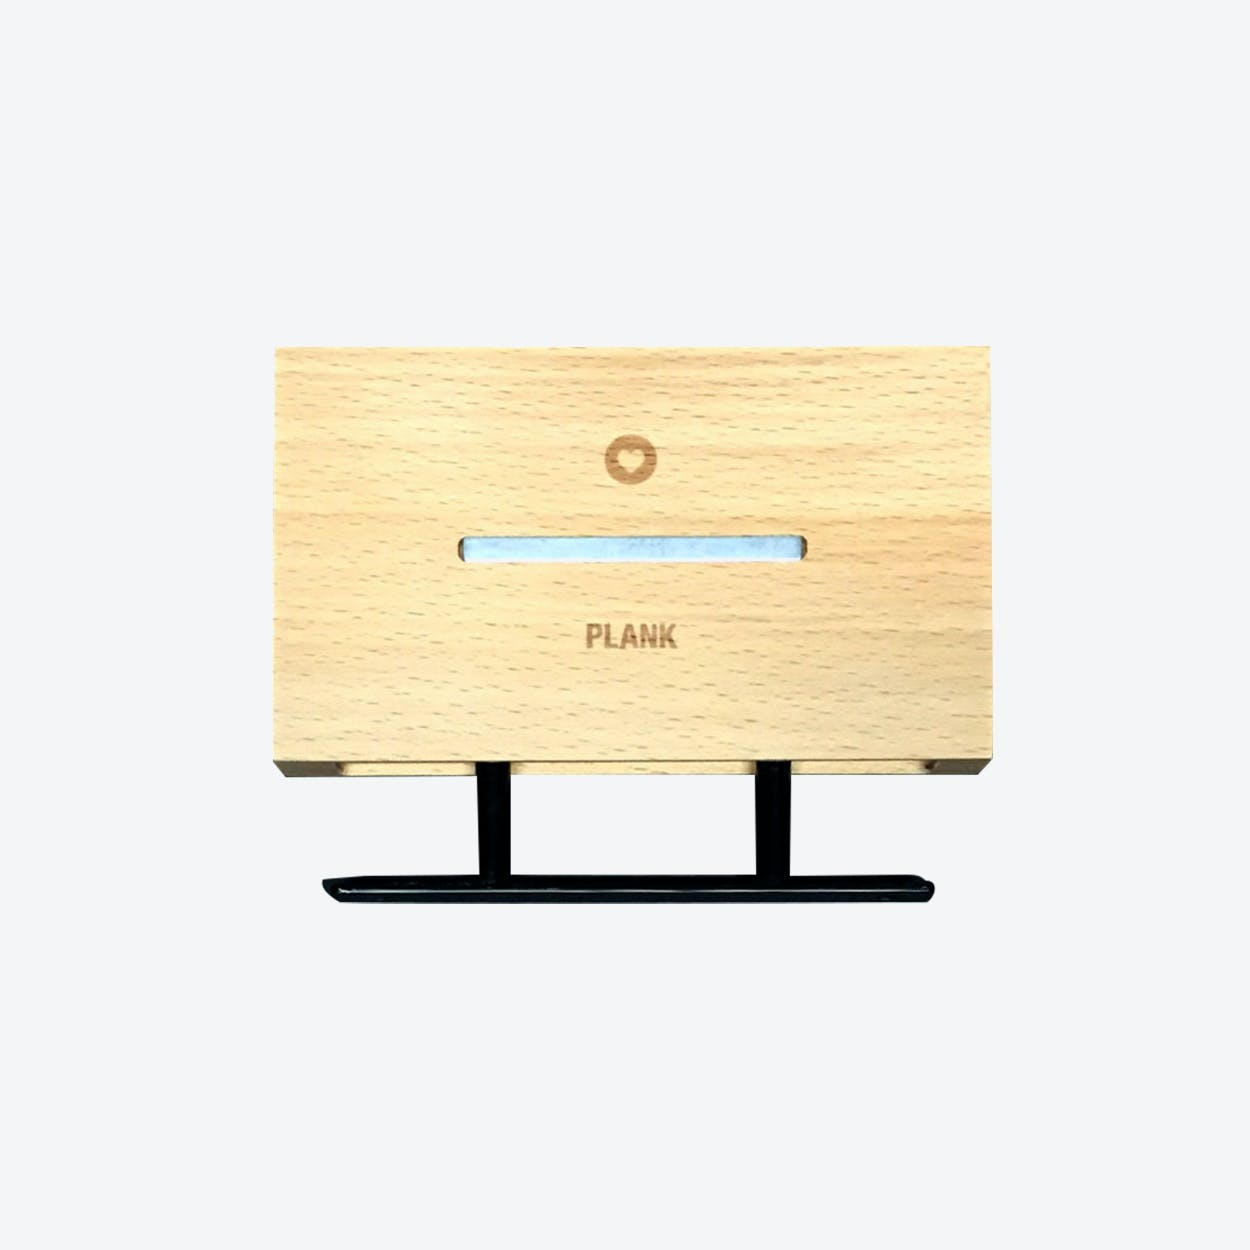 Plank Floating Shelf - Cell Phone & Key Holder in Natural Wood